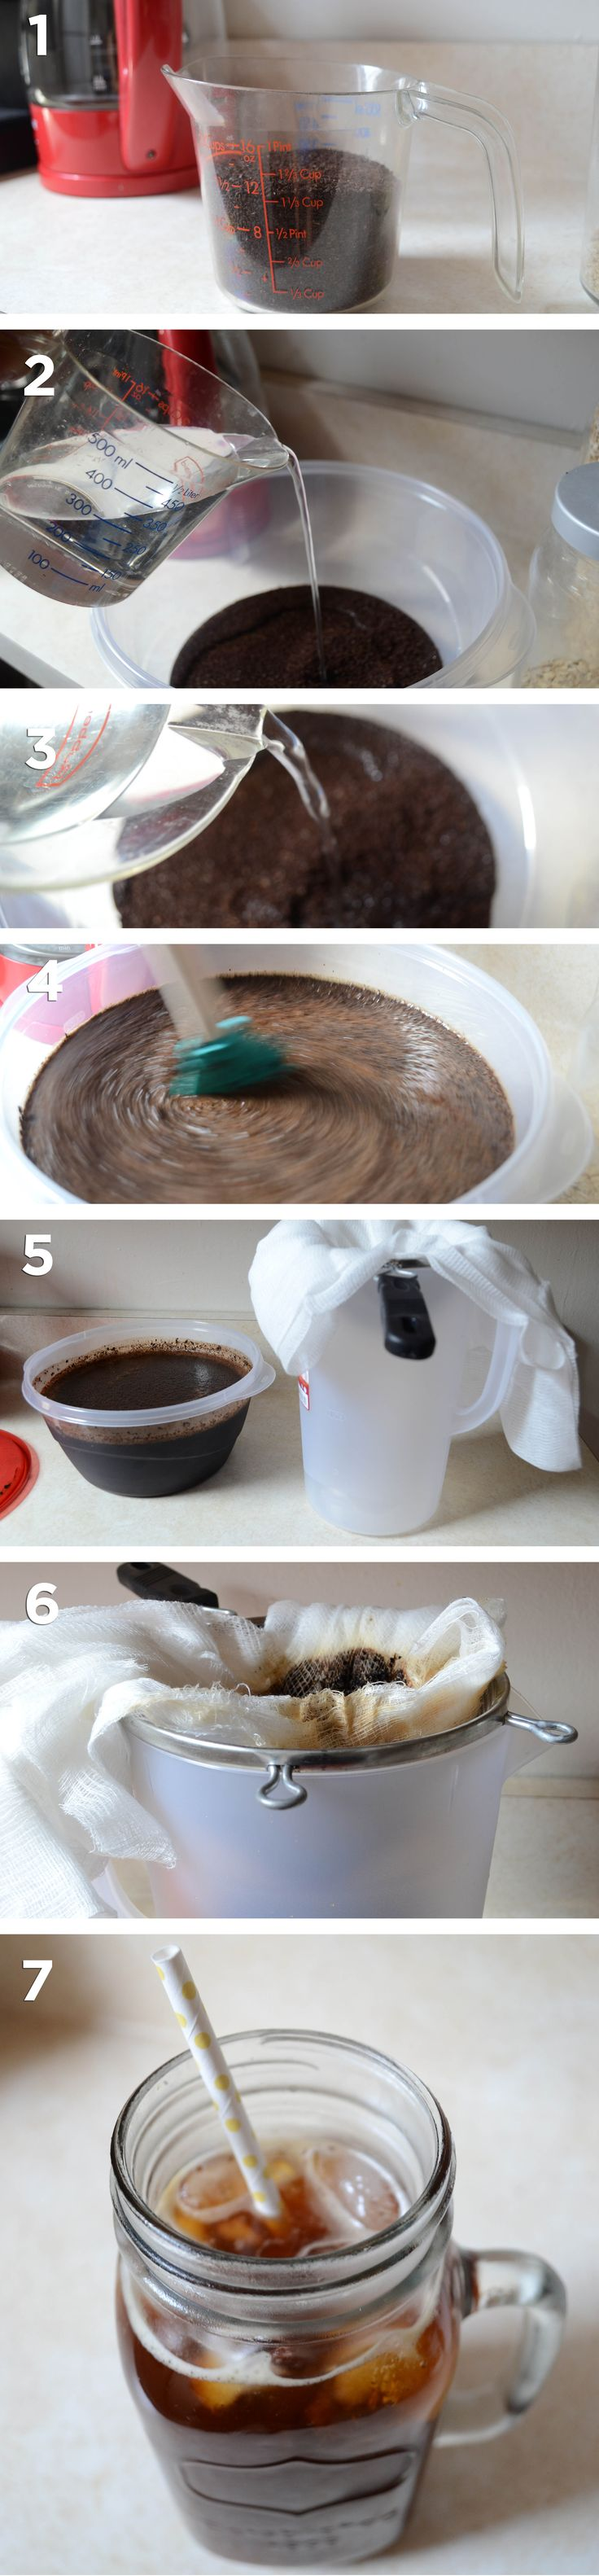 How to make cold brew coffee and save over $60 a month on iced coffee. Two different recipes to make small or large batches, with and without a french press.